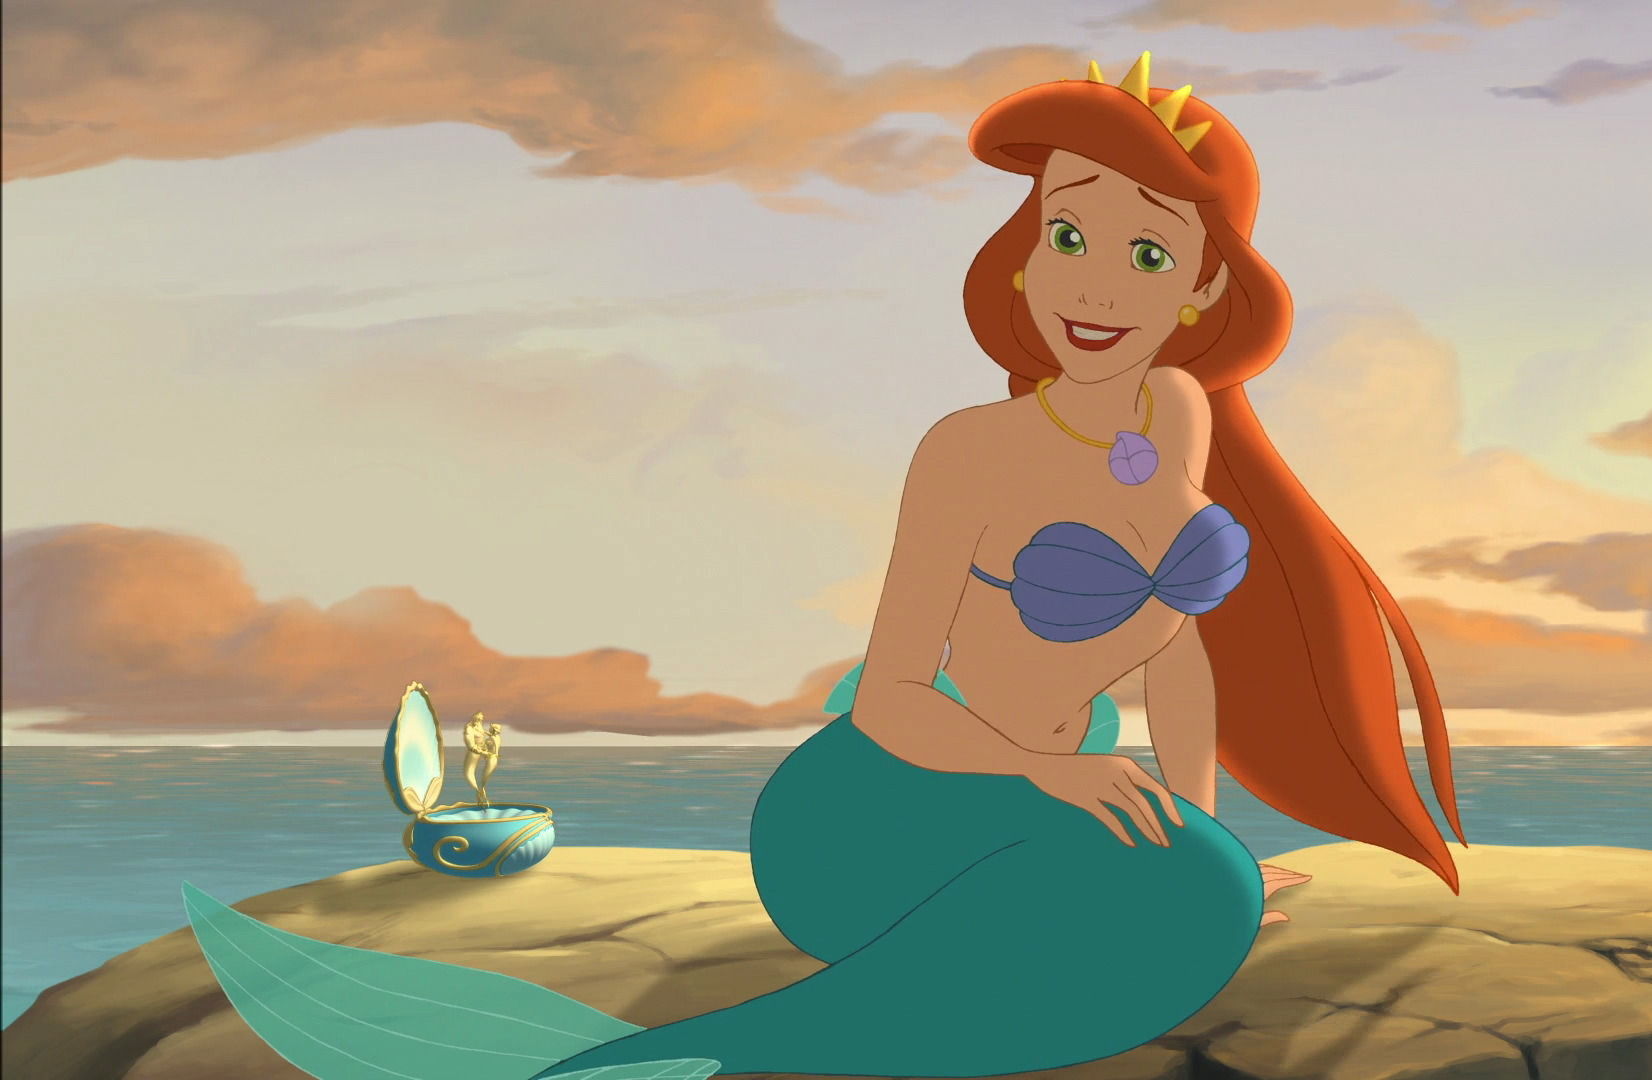 http://static.tvtropes.org/pmwiki/pub/images/Little-mermaid3-disneyscreencaps.com-390.jpg